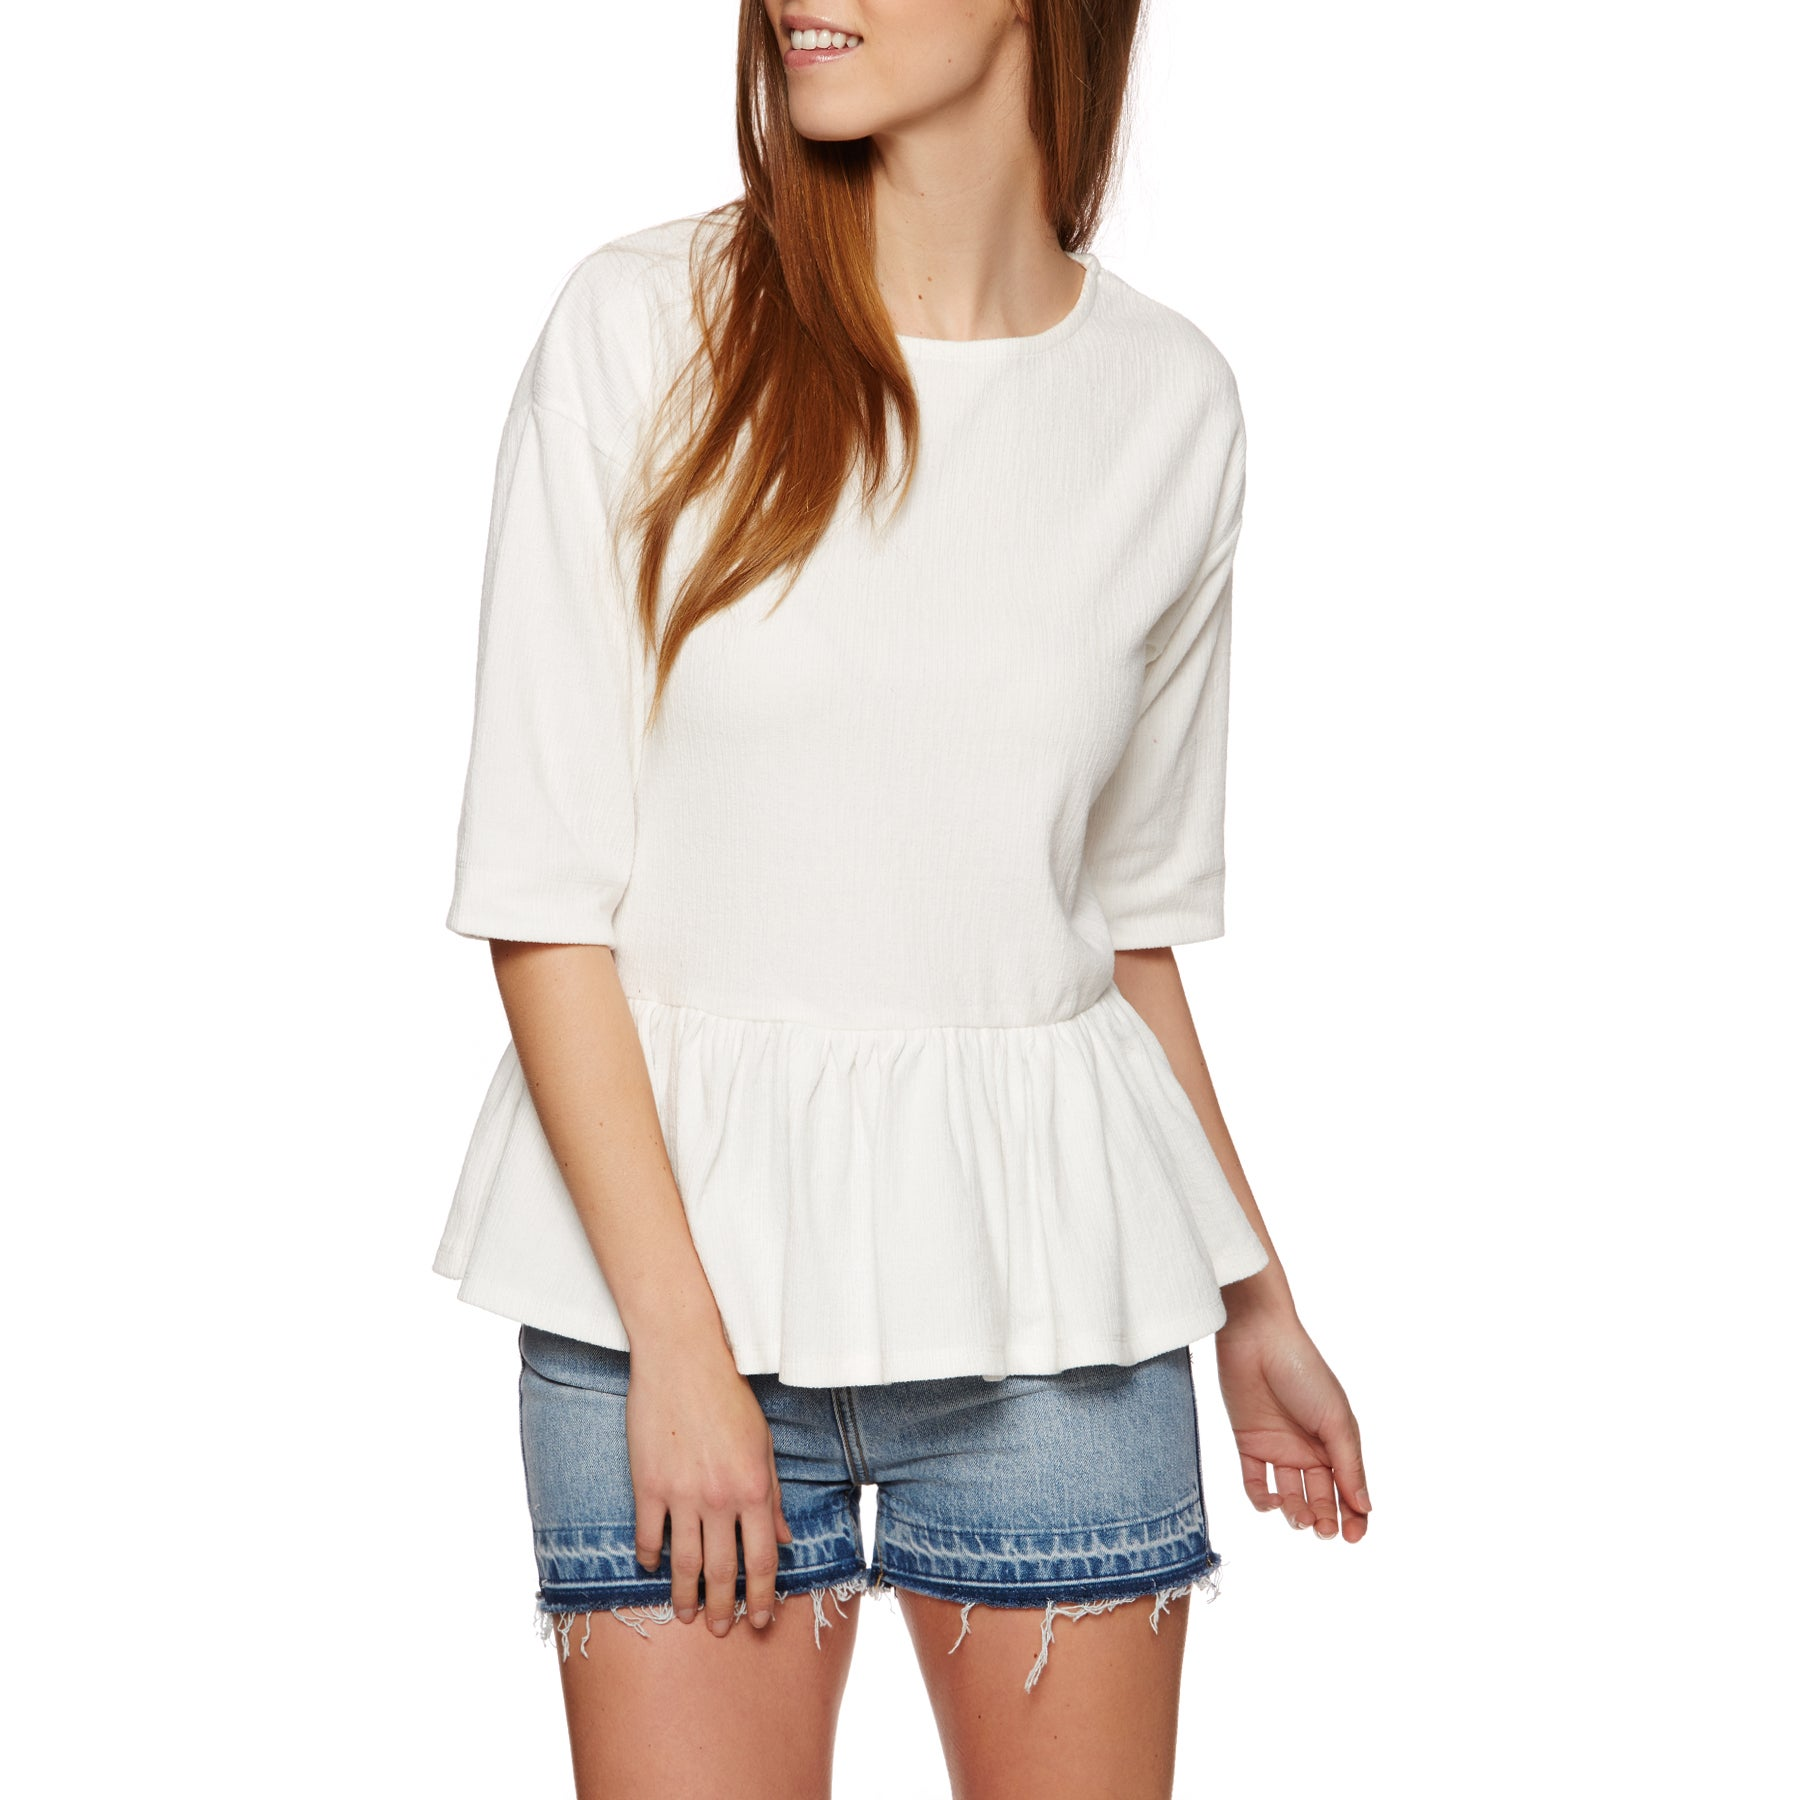 SWELL Daylight Peplum Ladies Top